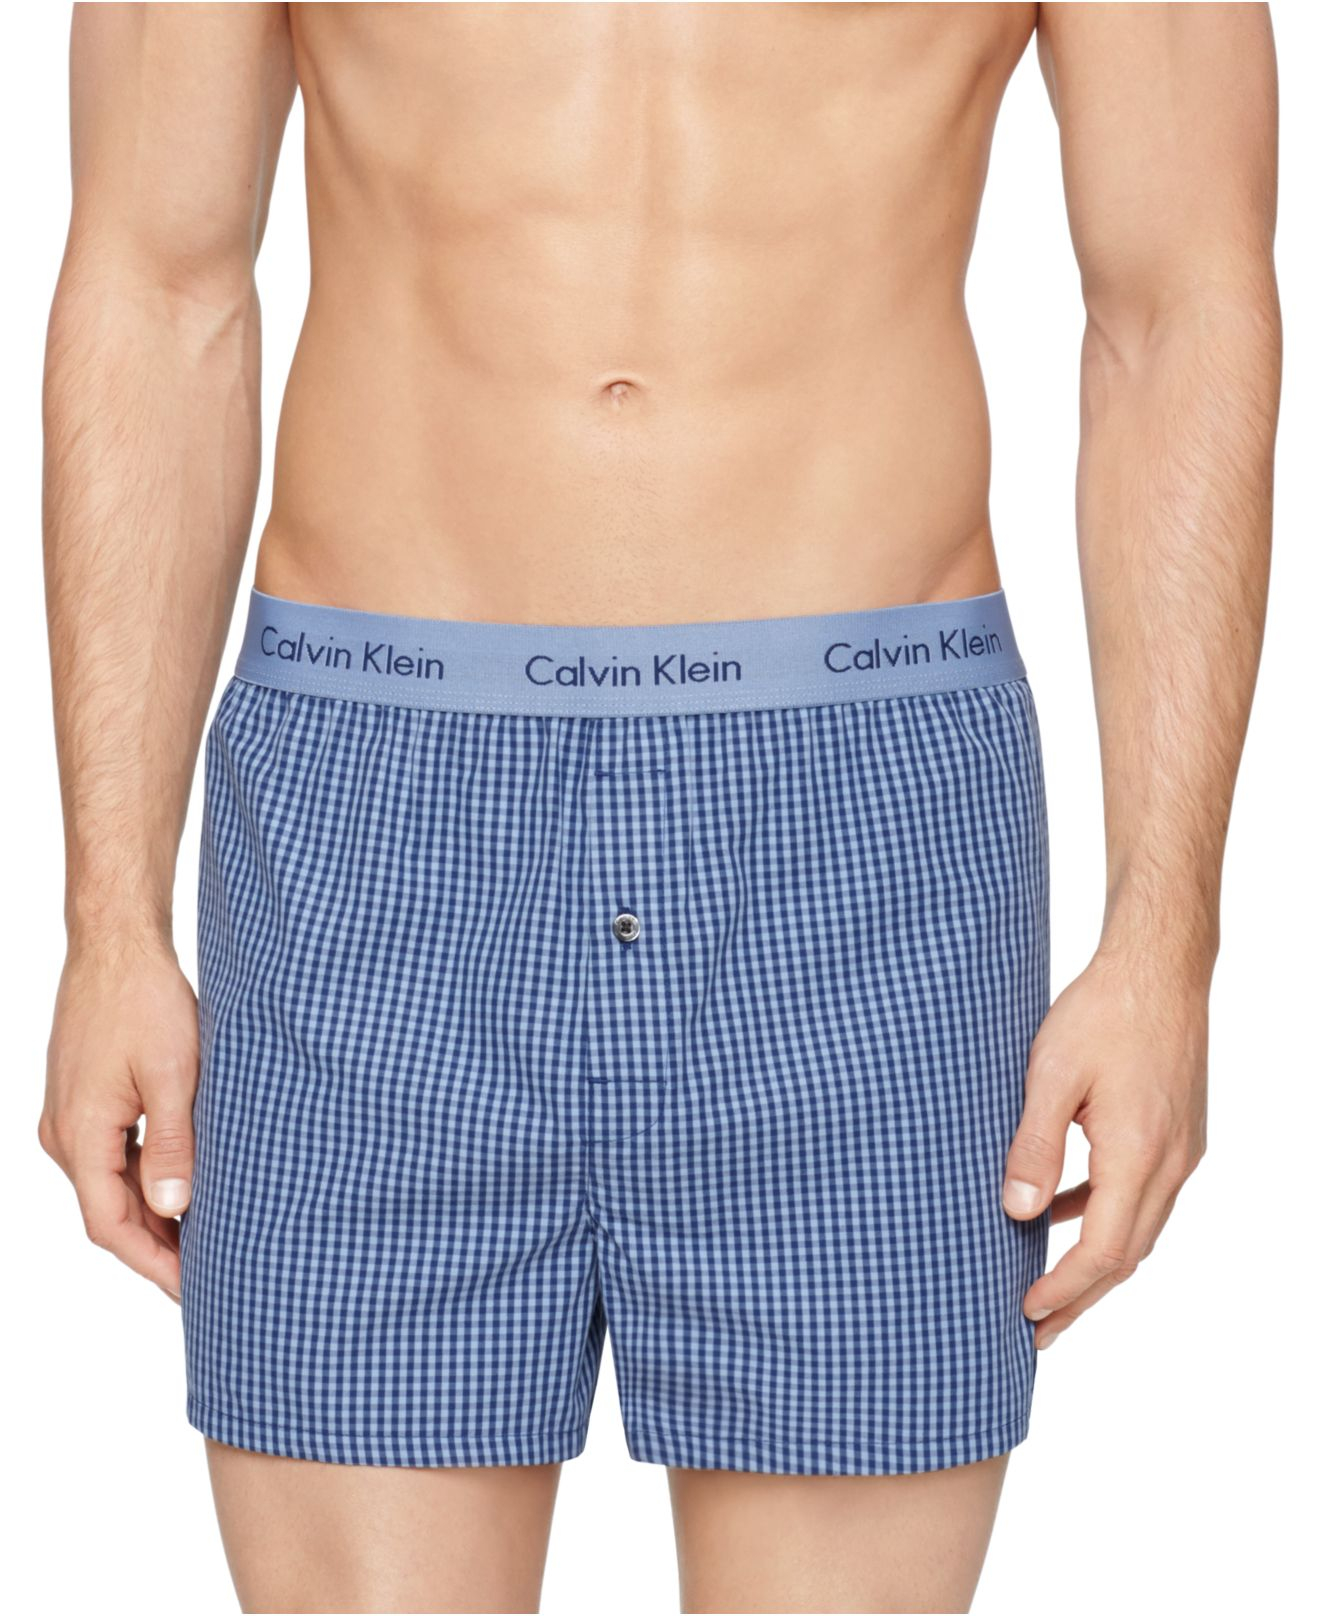 calvin klein calvin klein men 39 s woven slim fit boxers in blue for men lyst. Black Bedroom Furniture Sets. Home Design Ideas